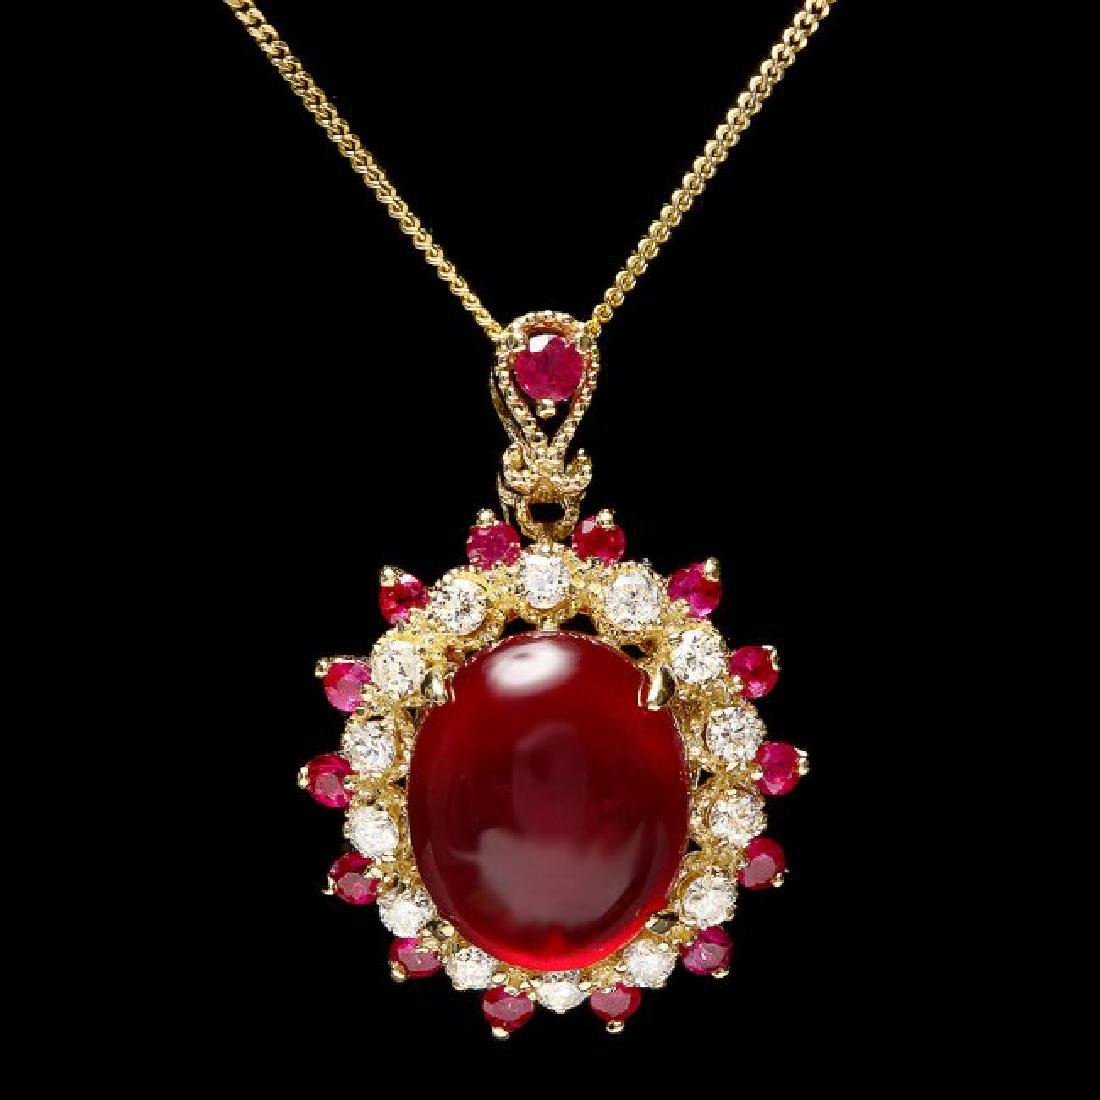 14k Yellow Gold 8.2ct Ruby 0.44ct Diamond Pendant